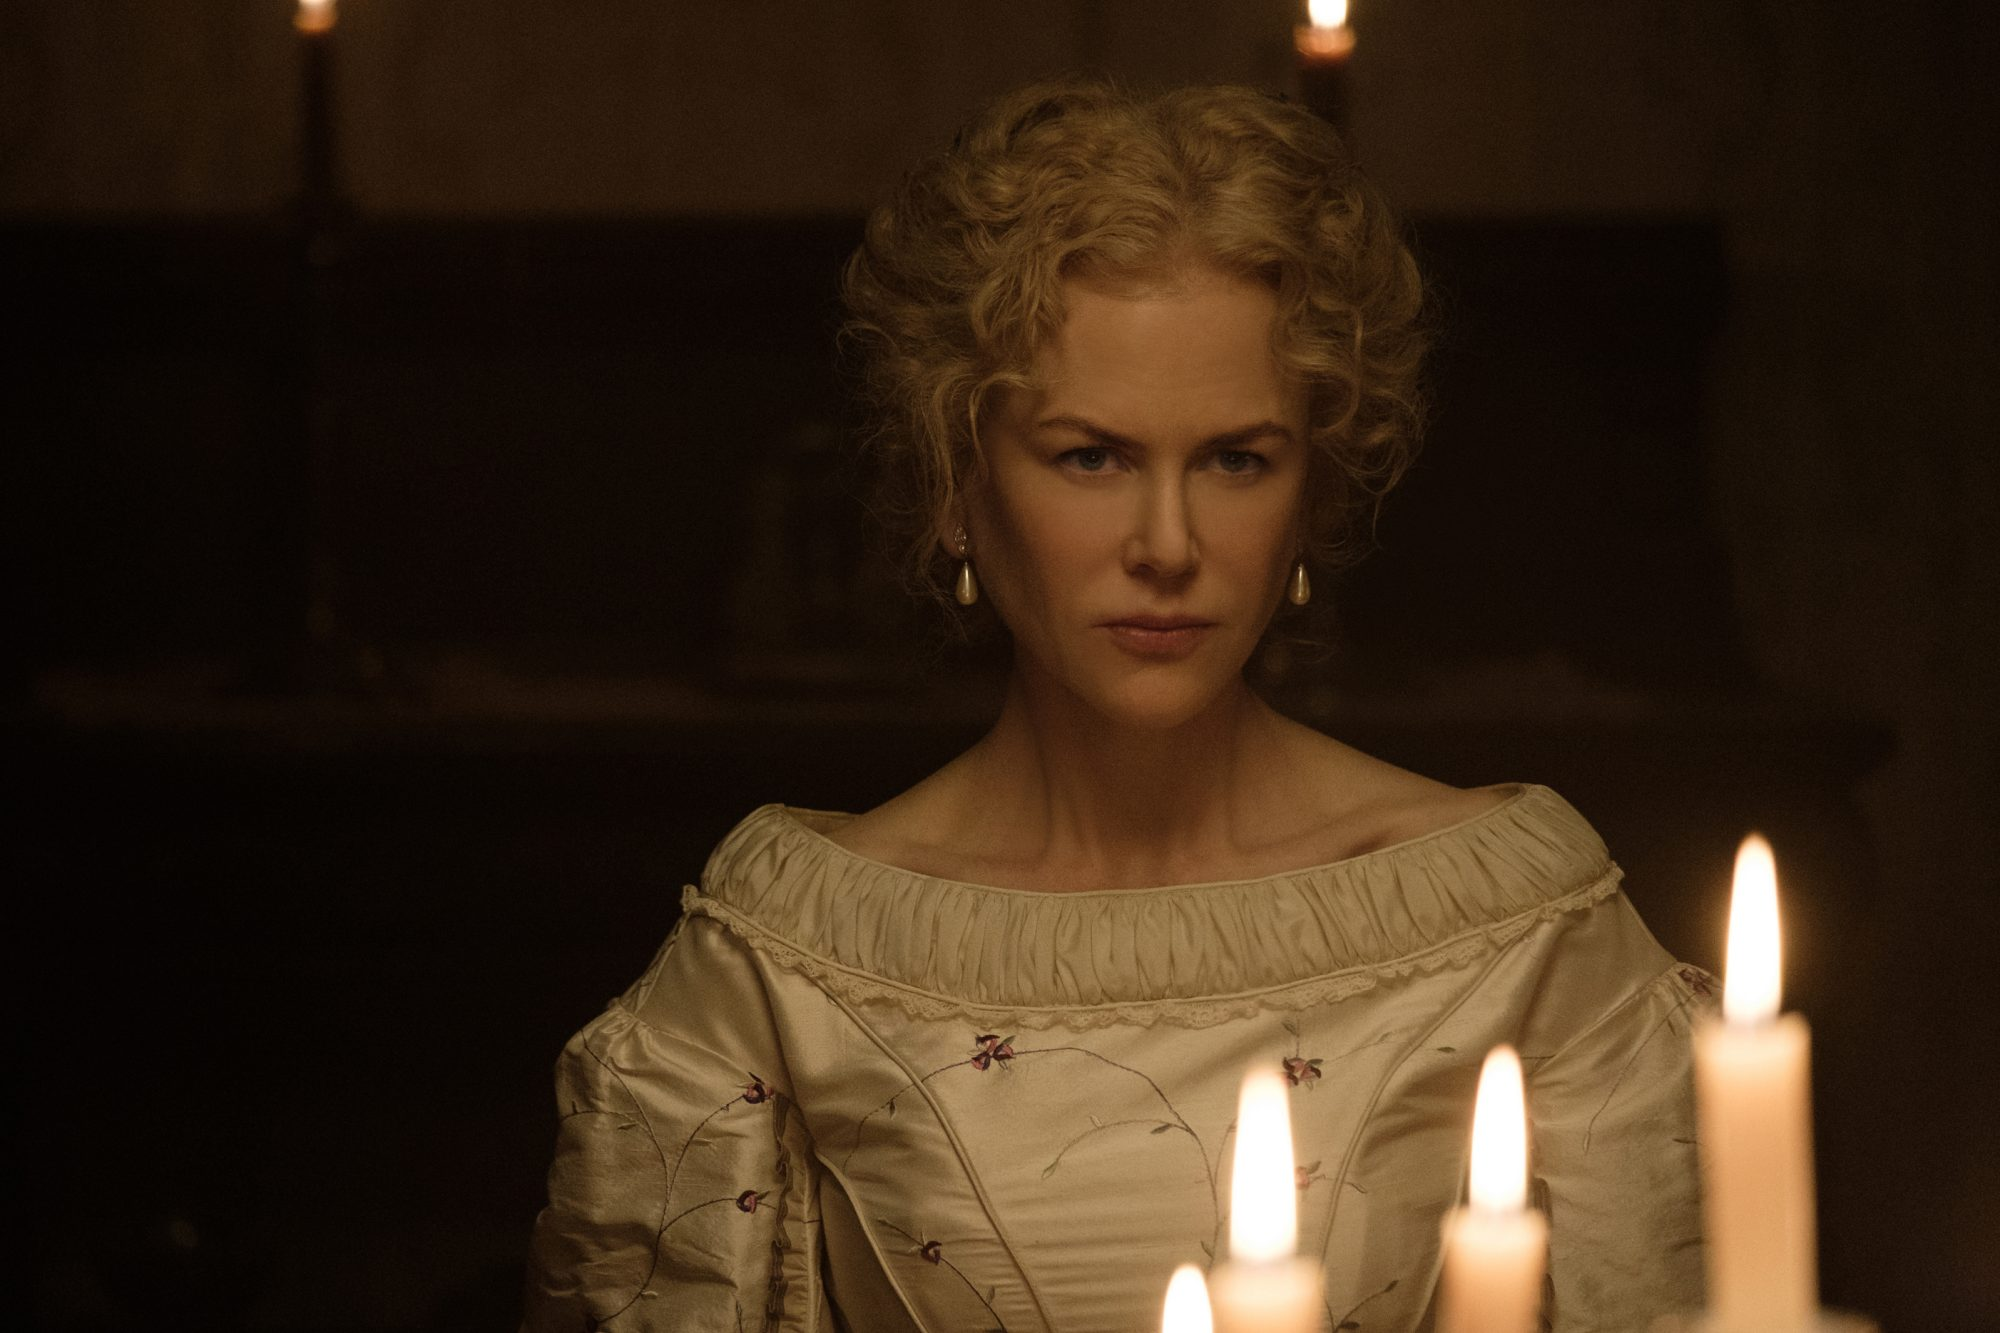 Sofia Coppola's 'The Beguiled' gets an intense new trailer